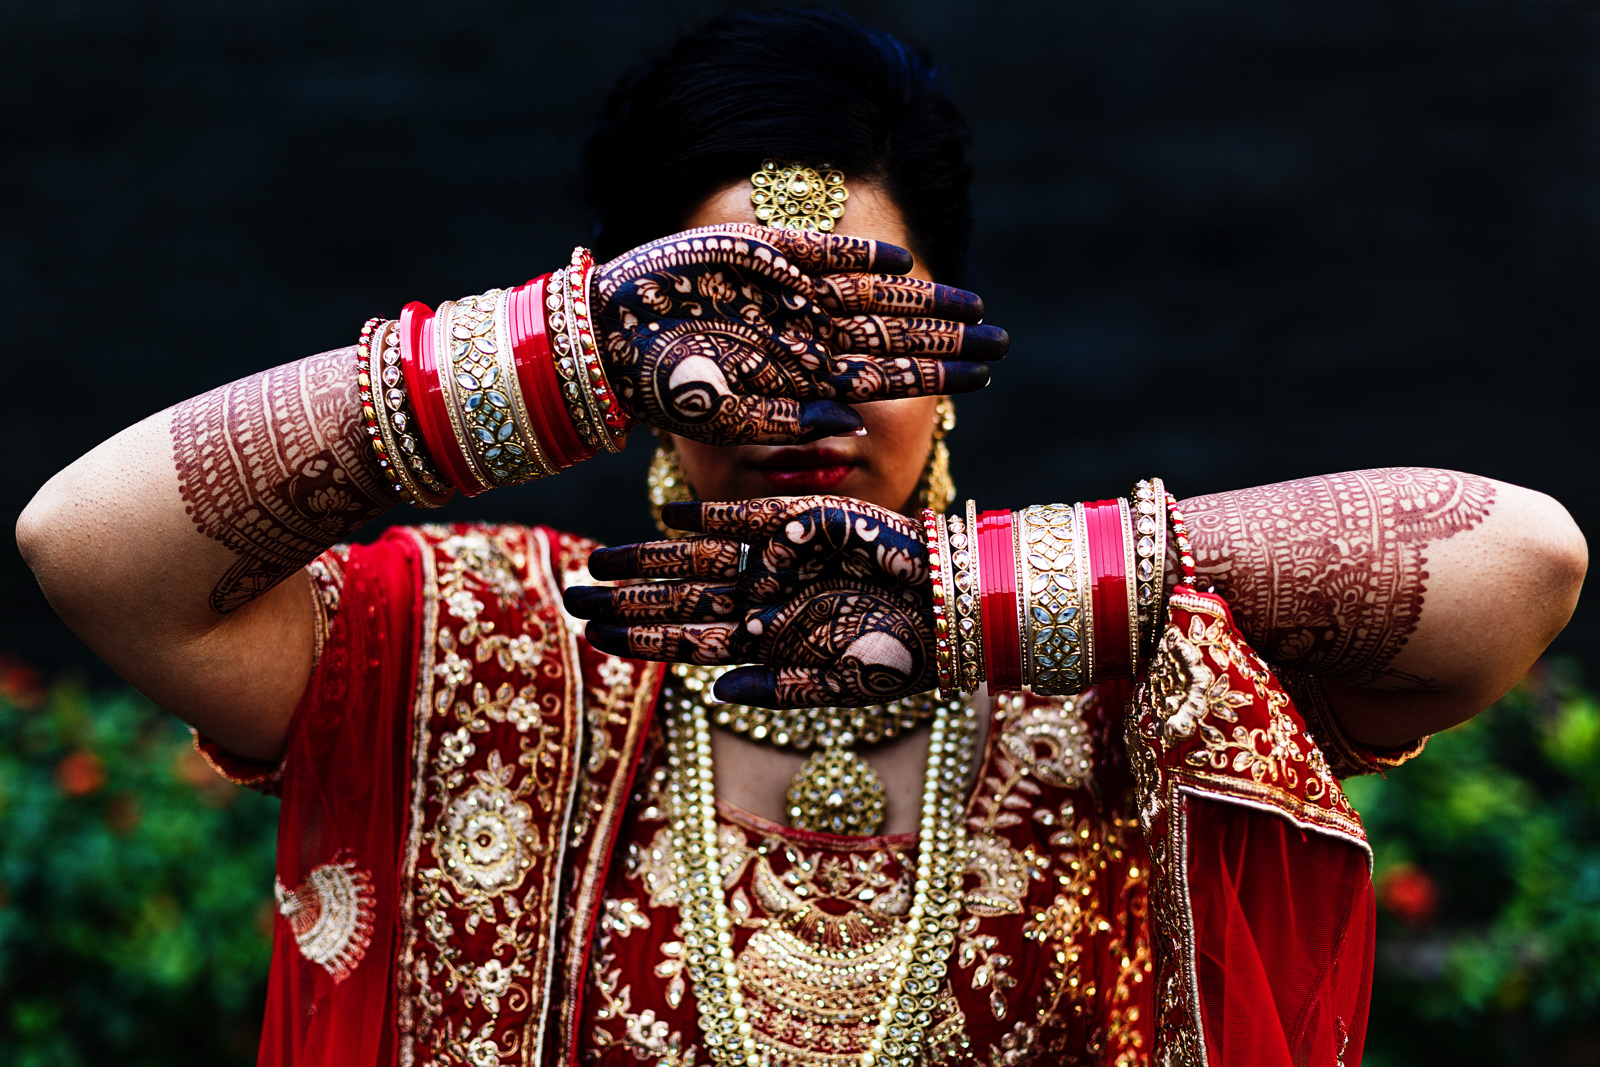 Hindu bride shows her henna tattooed hands